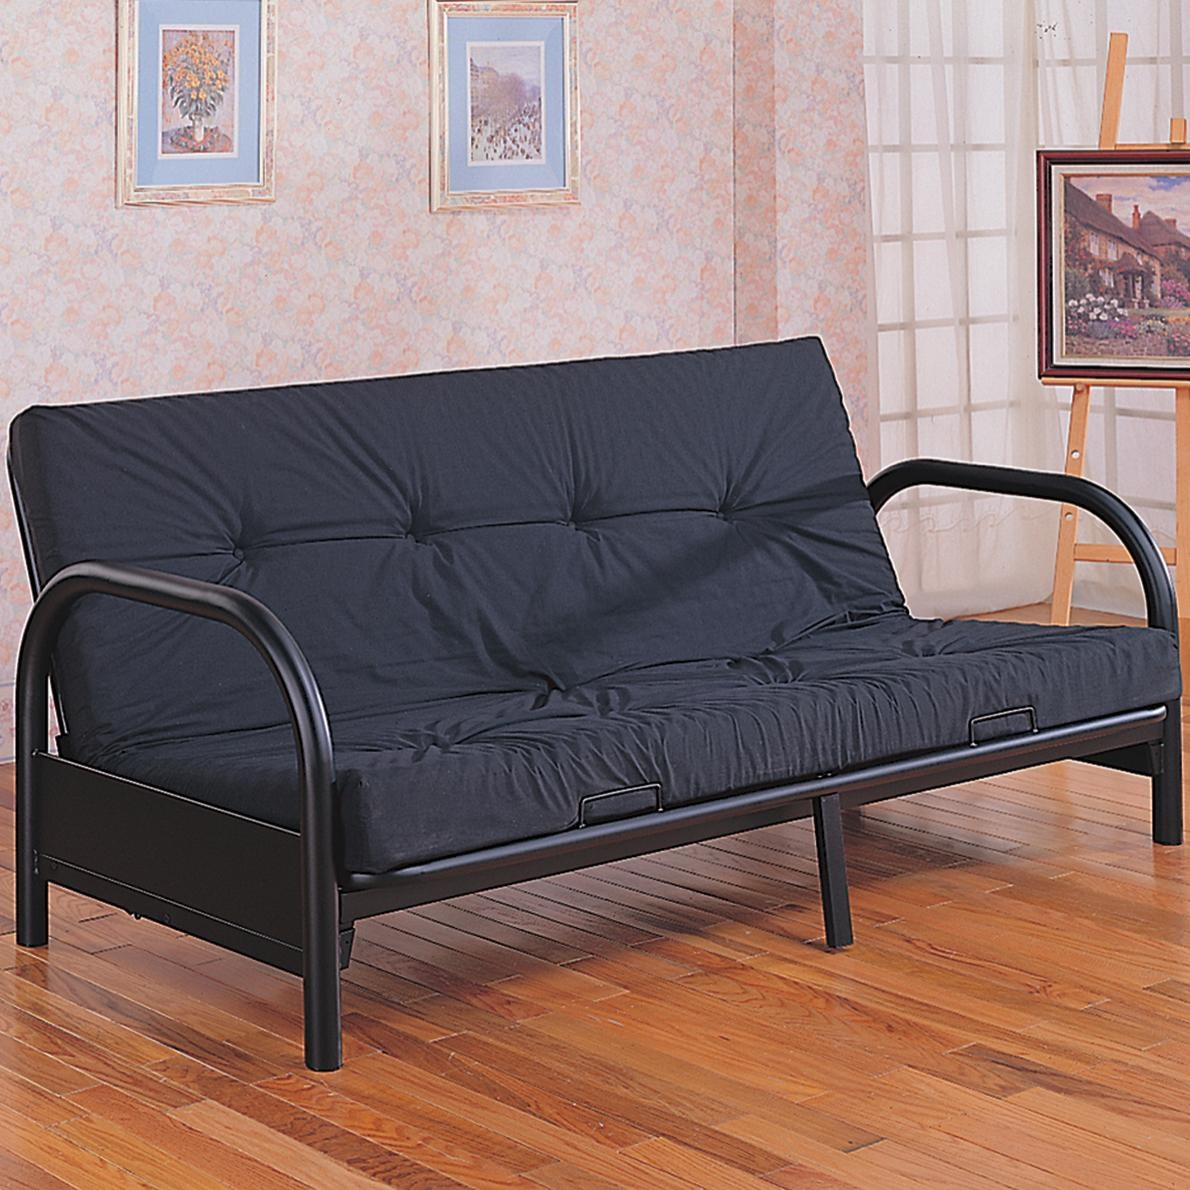 Coaster Futons 2345 Futon Frame Northeast Factory Direct